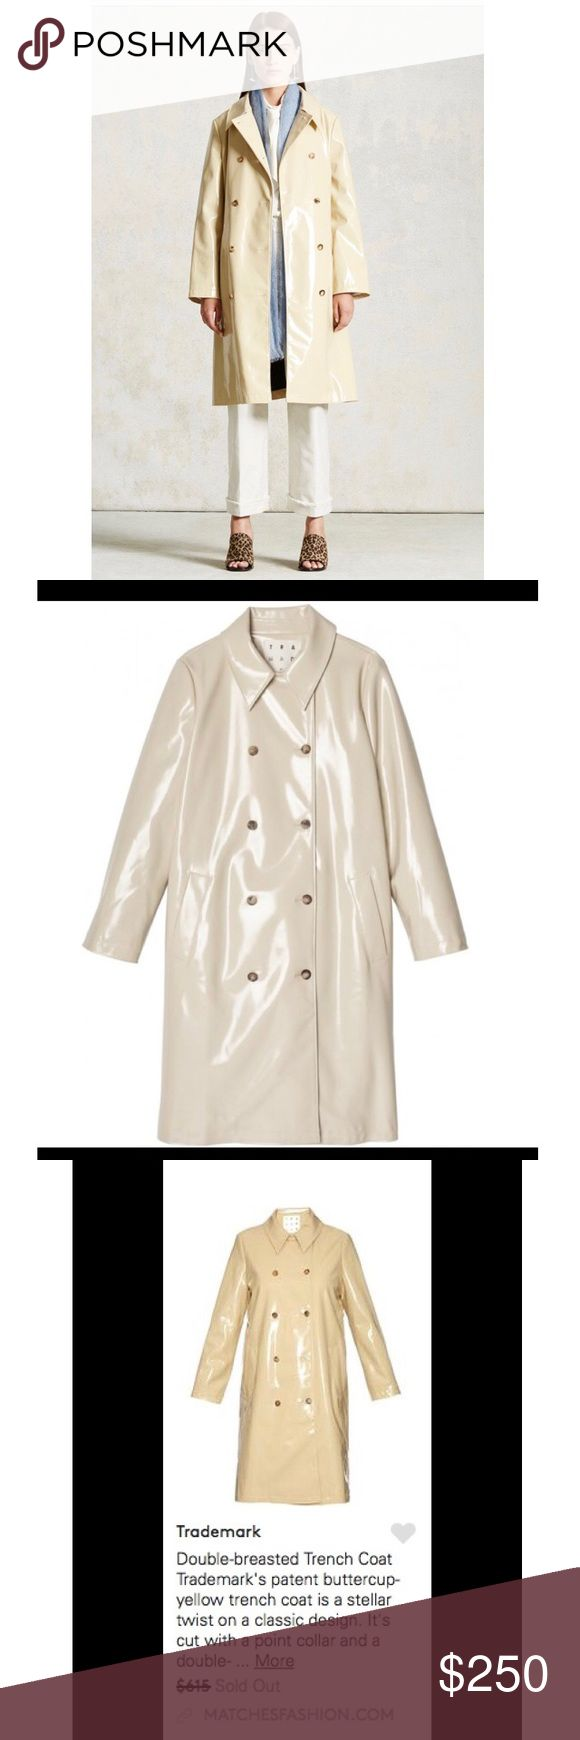 Double-breasted Trench Coat Brand New! Double breasted Trench Coat  Patent buttercup yellow trench coat trade-mark Jackets & Coats Trench Coats